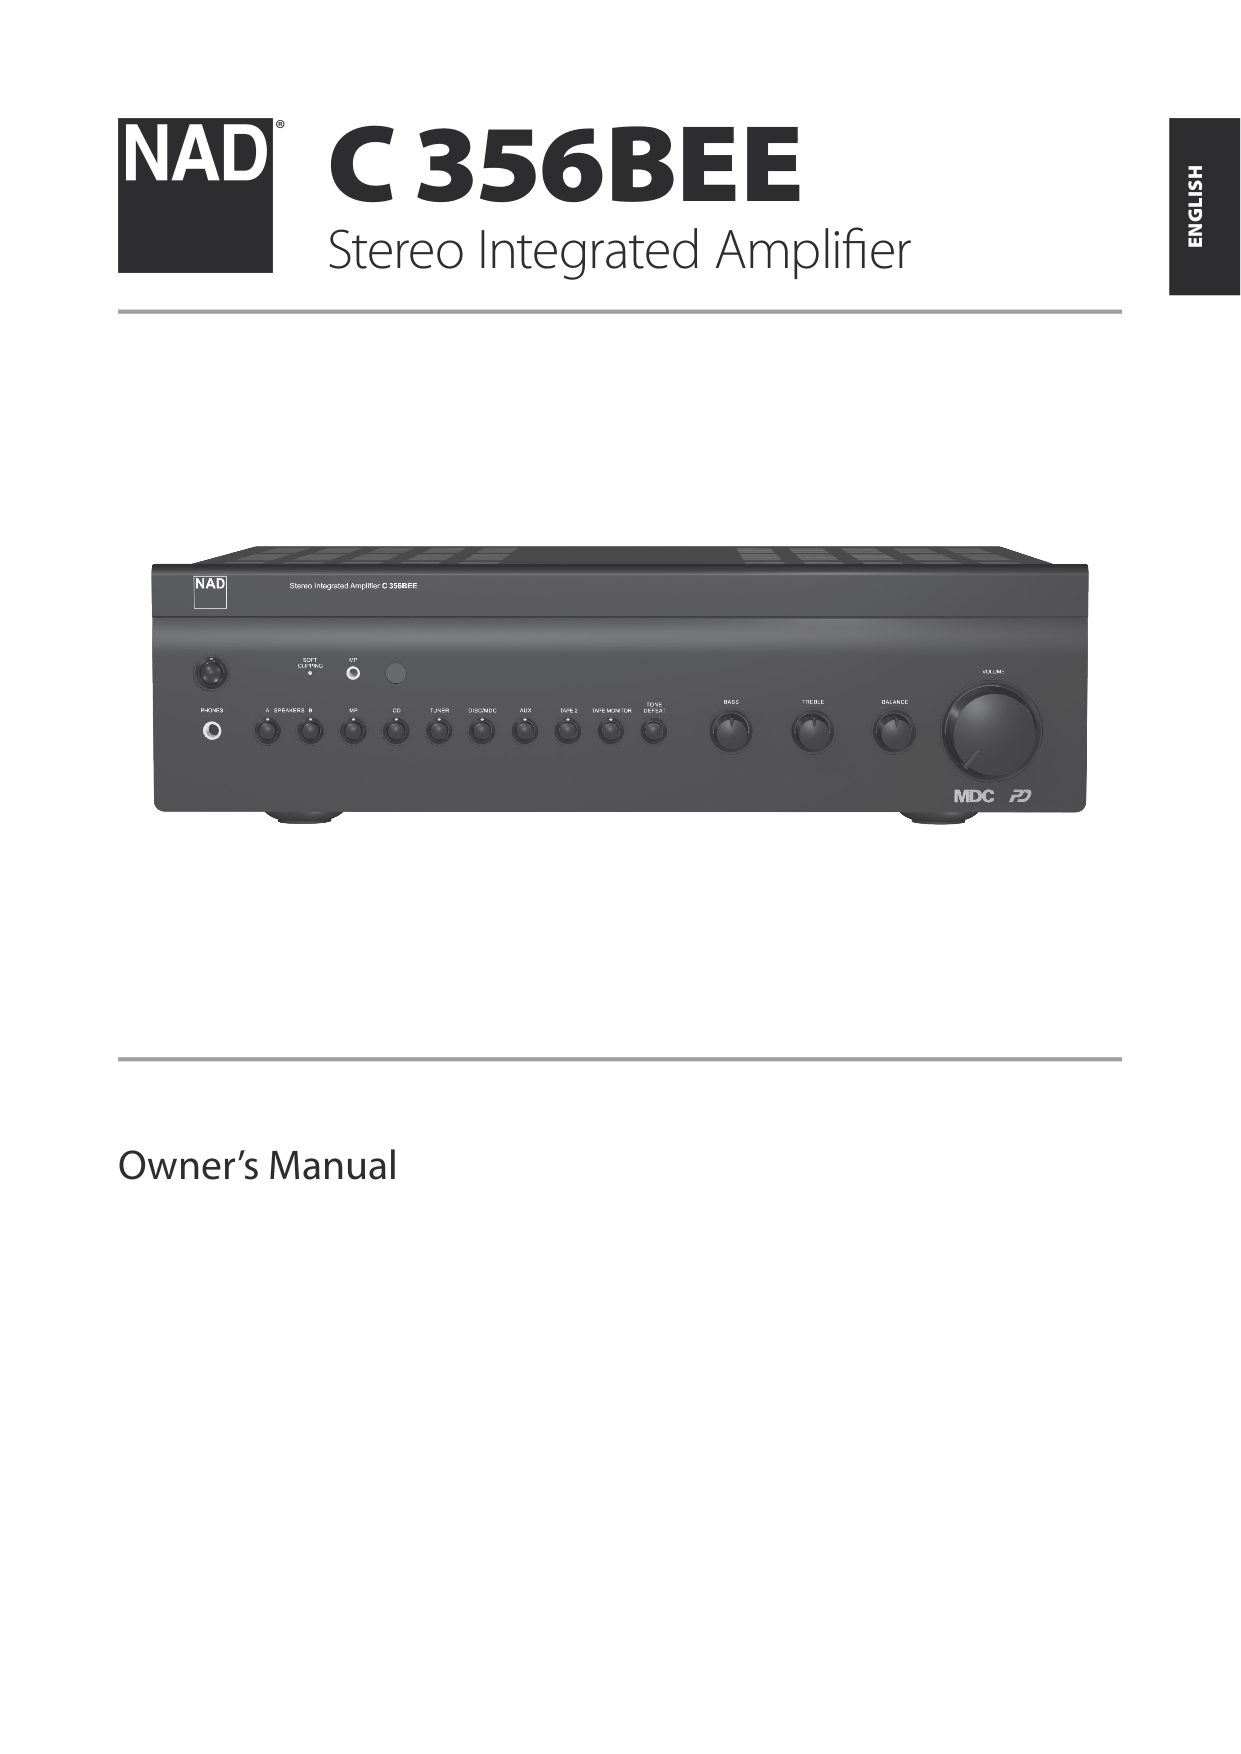 download free pdf for nad t773 receiver manual rh umlib com nad t773 user manual nad t773 user manual